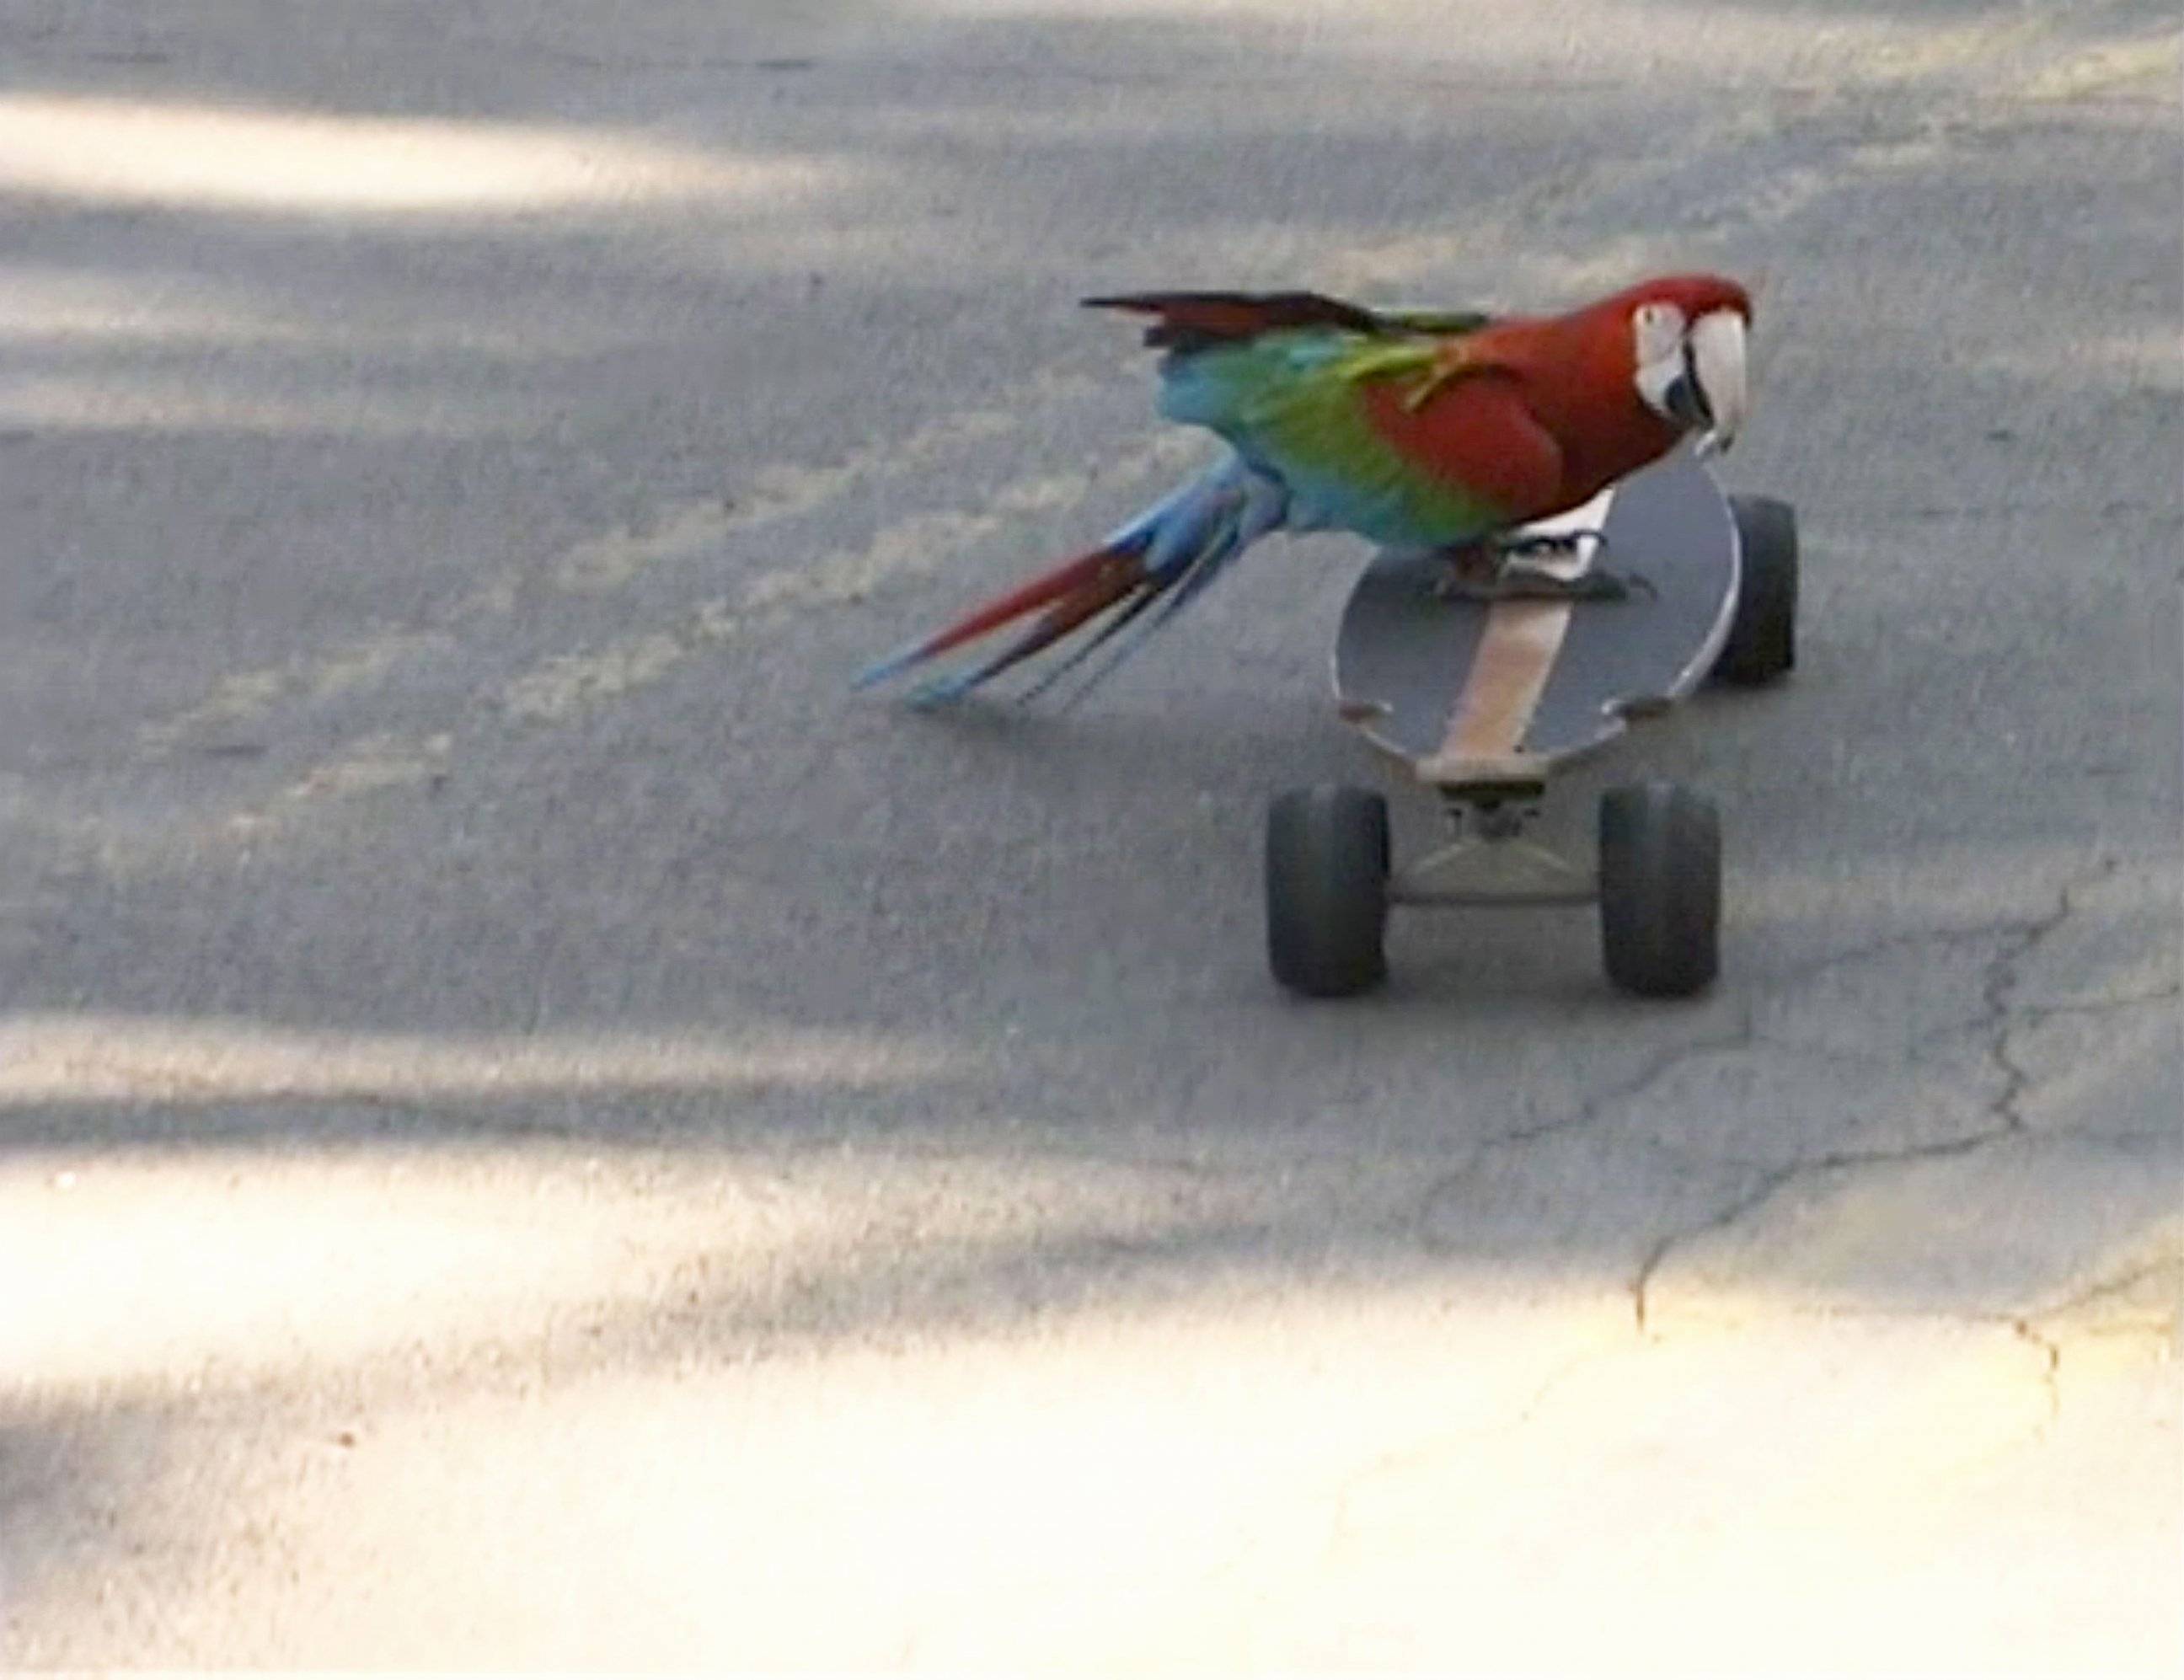 Tony Hawk Has Some Seriously Feathered Competition